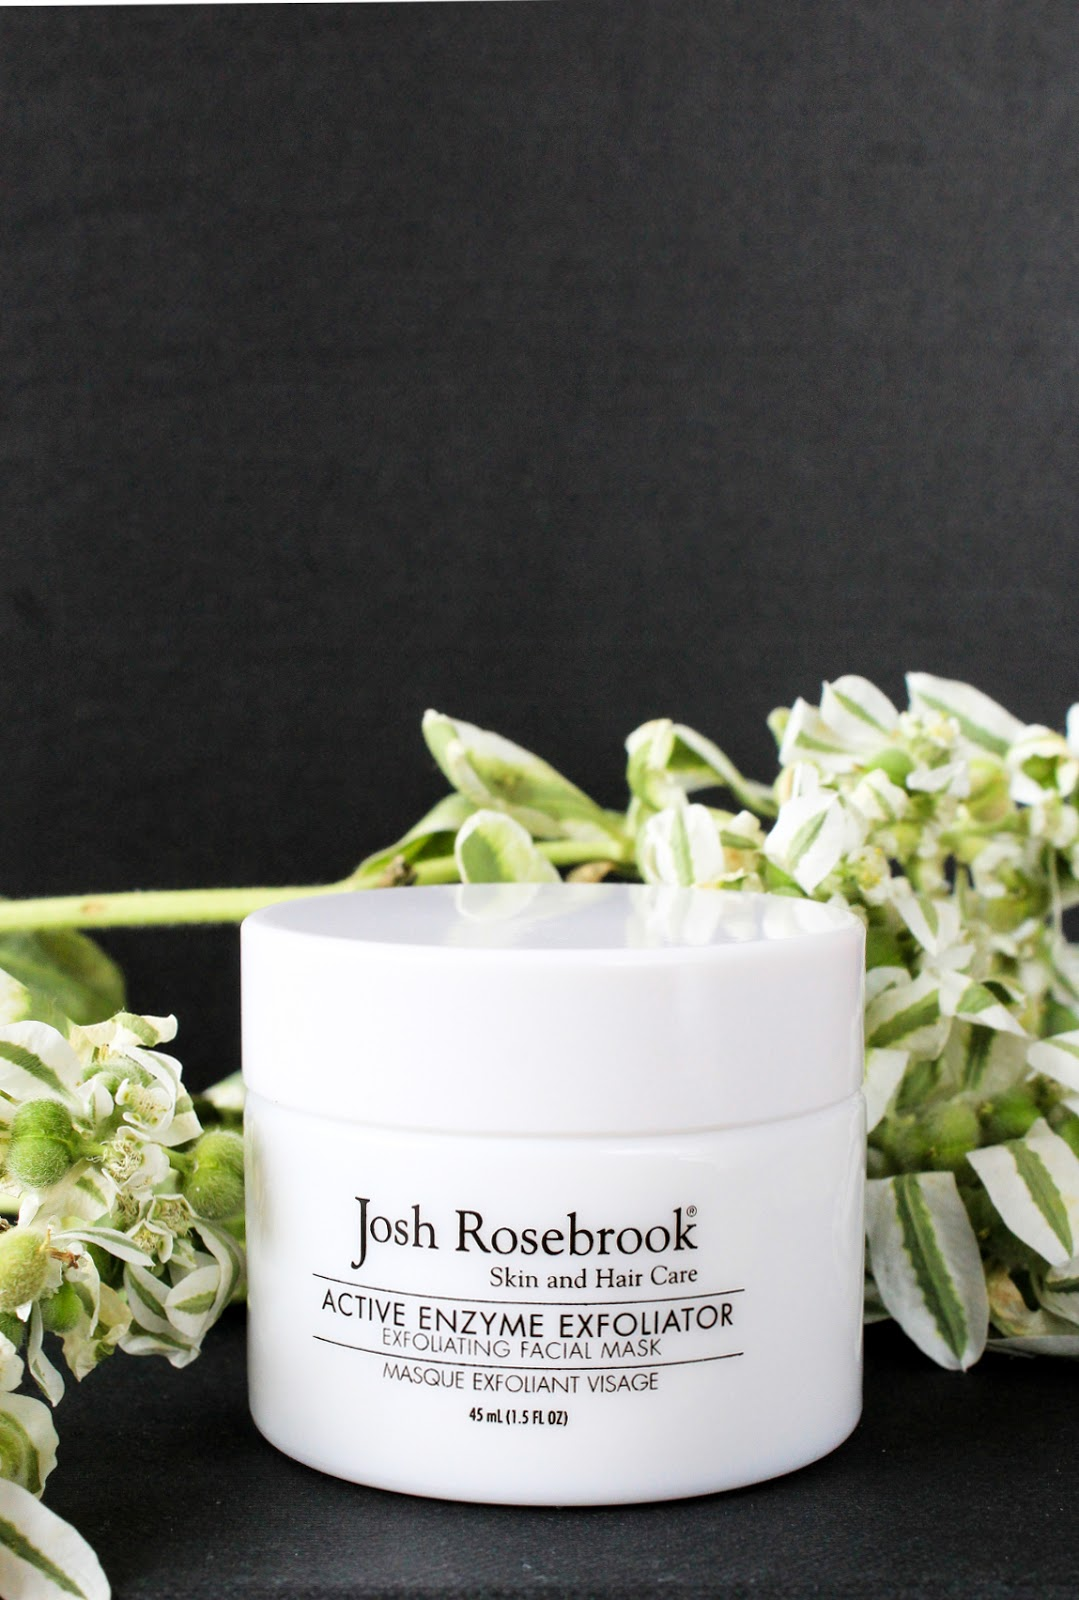 Beauty Heroes September 2018 Beauty Discovery Box Josh Rosebrook Active Enzyme Exfoliator